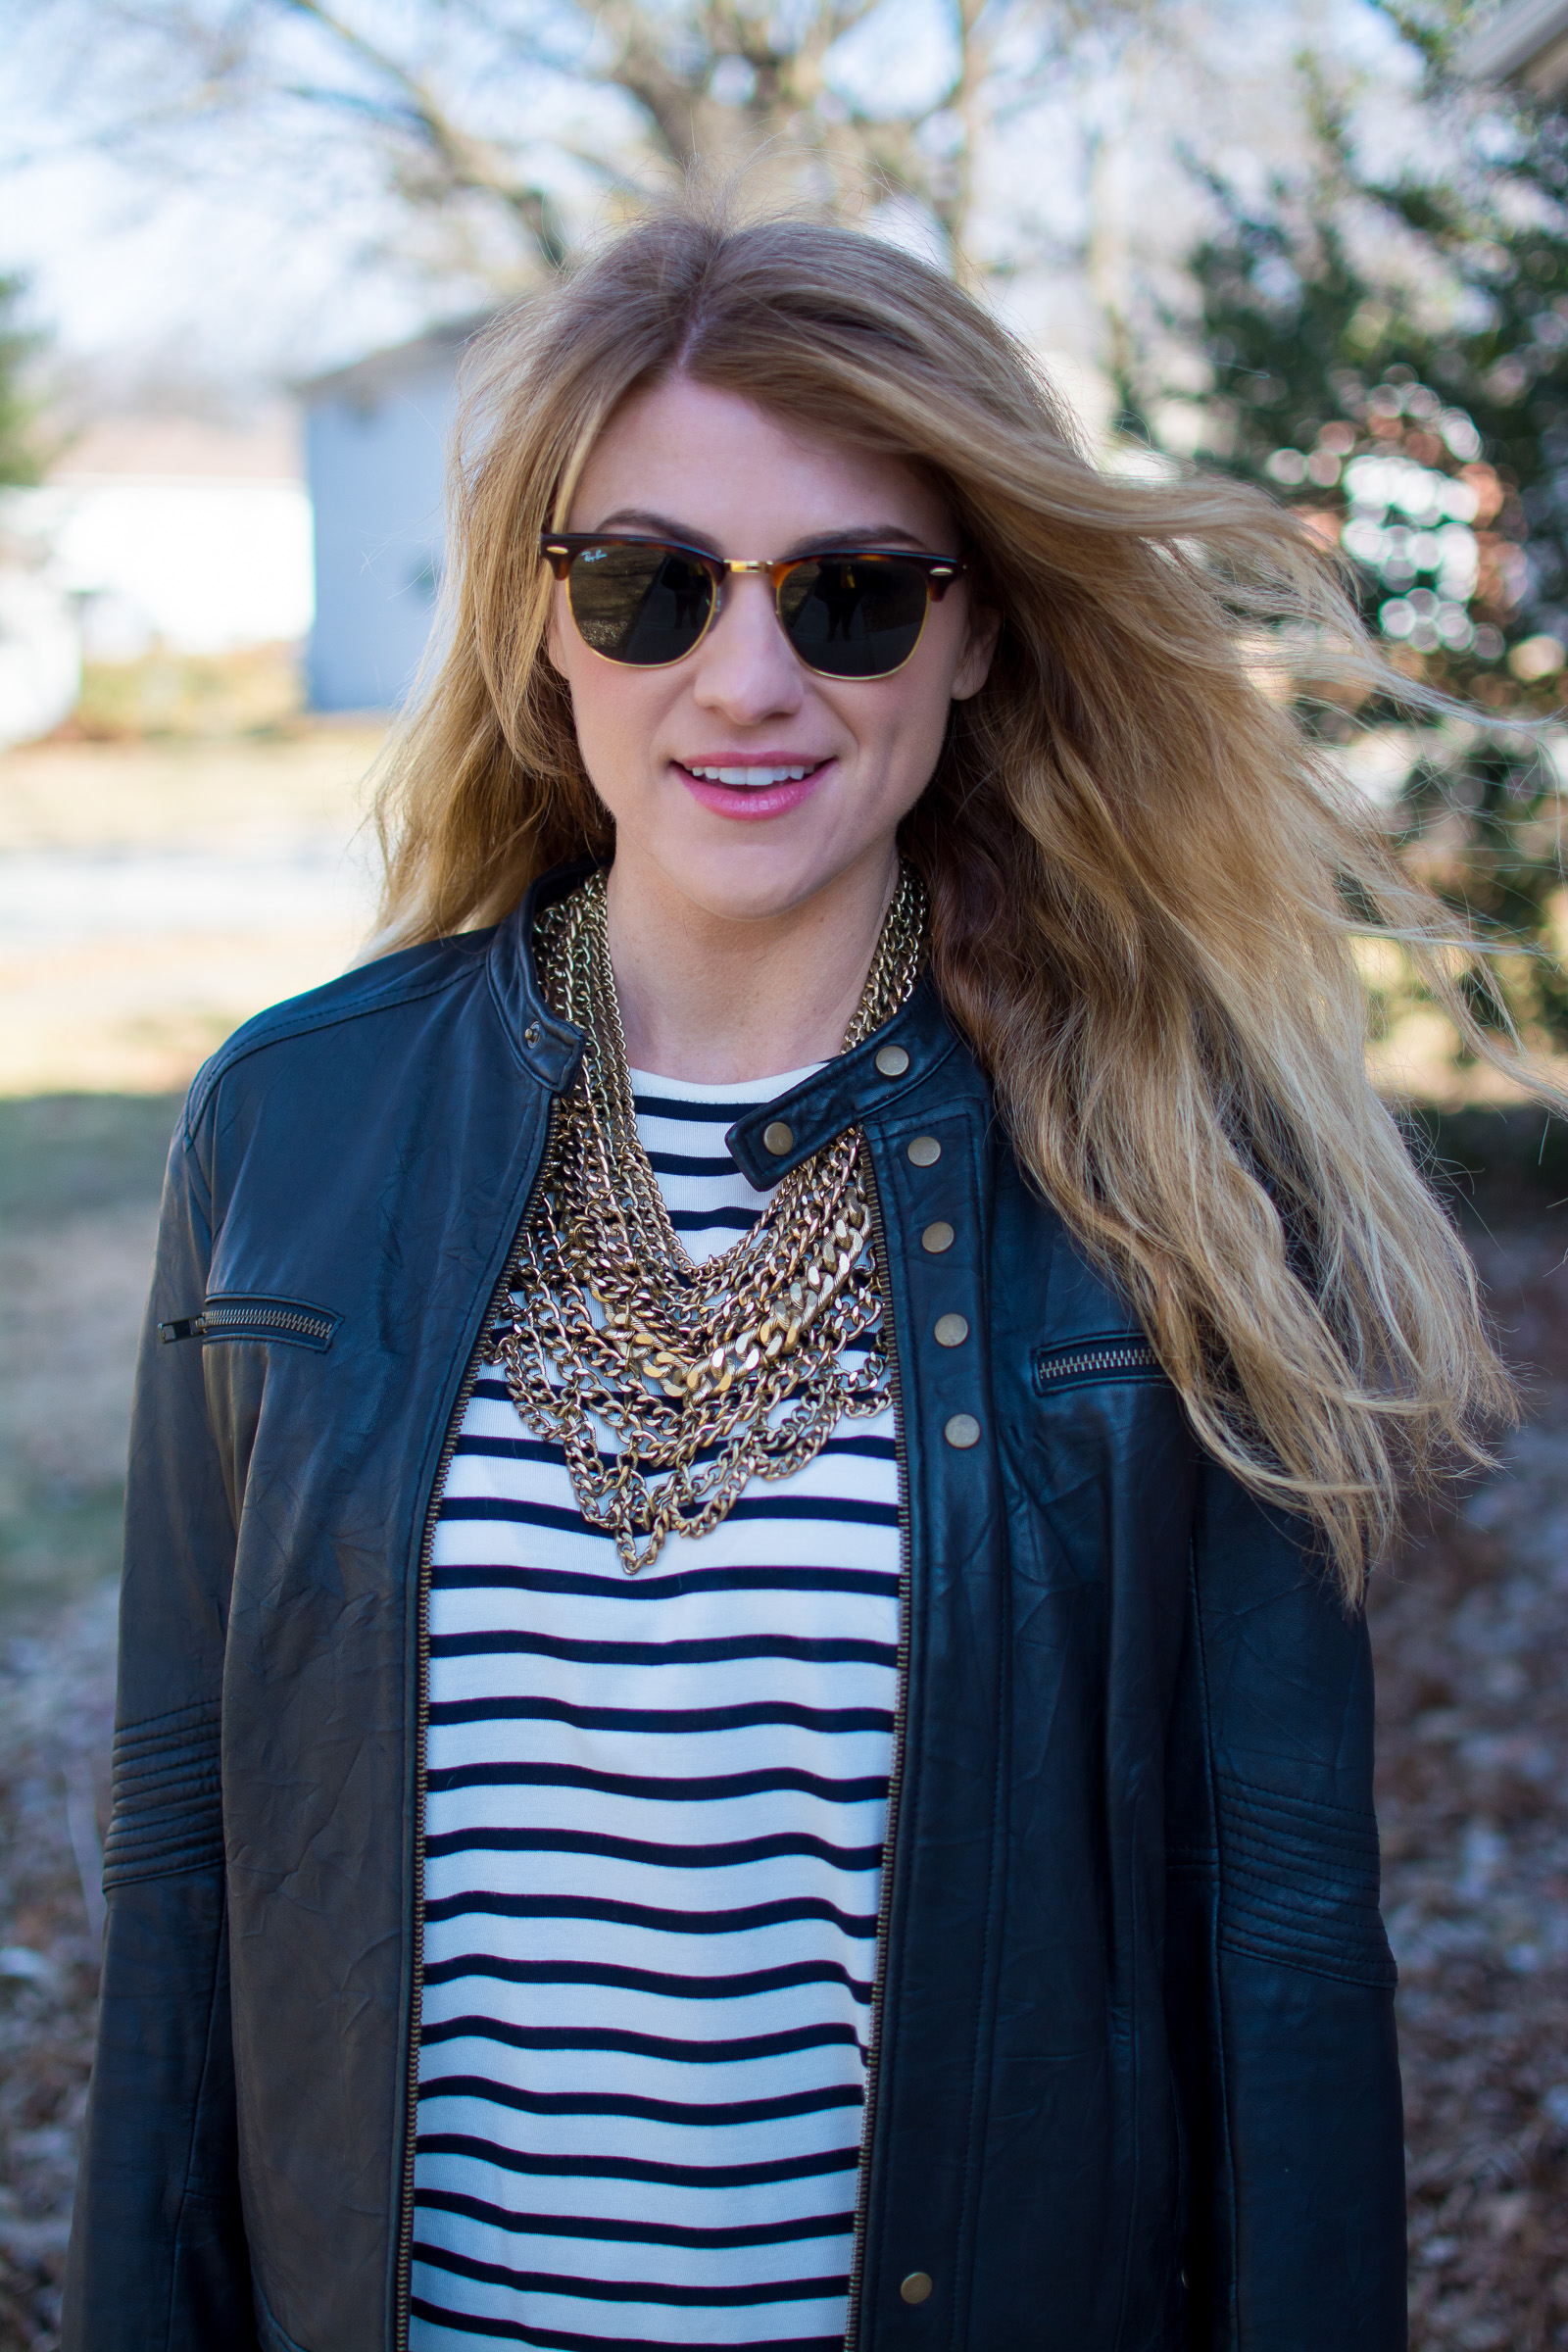 Ashley from LSR in a stripe t-shirt, leather jacket, and gold chain statement necklace